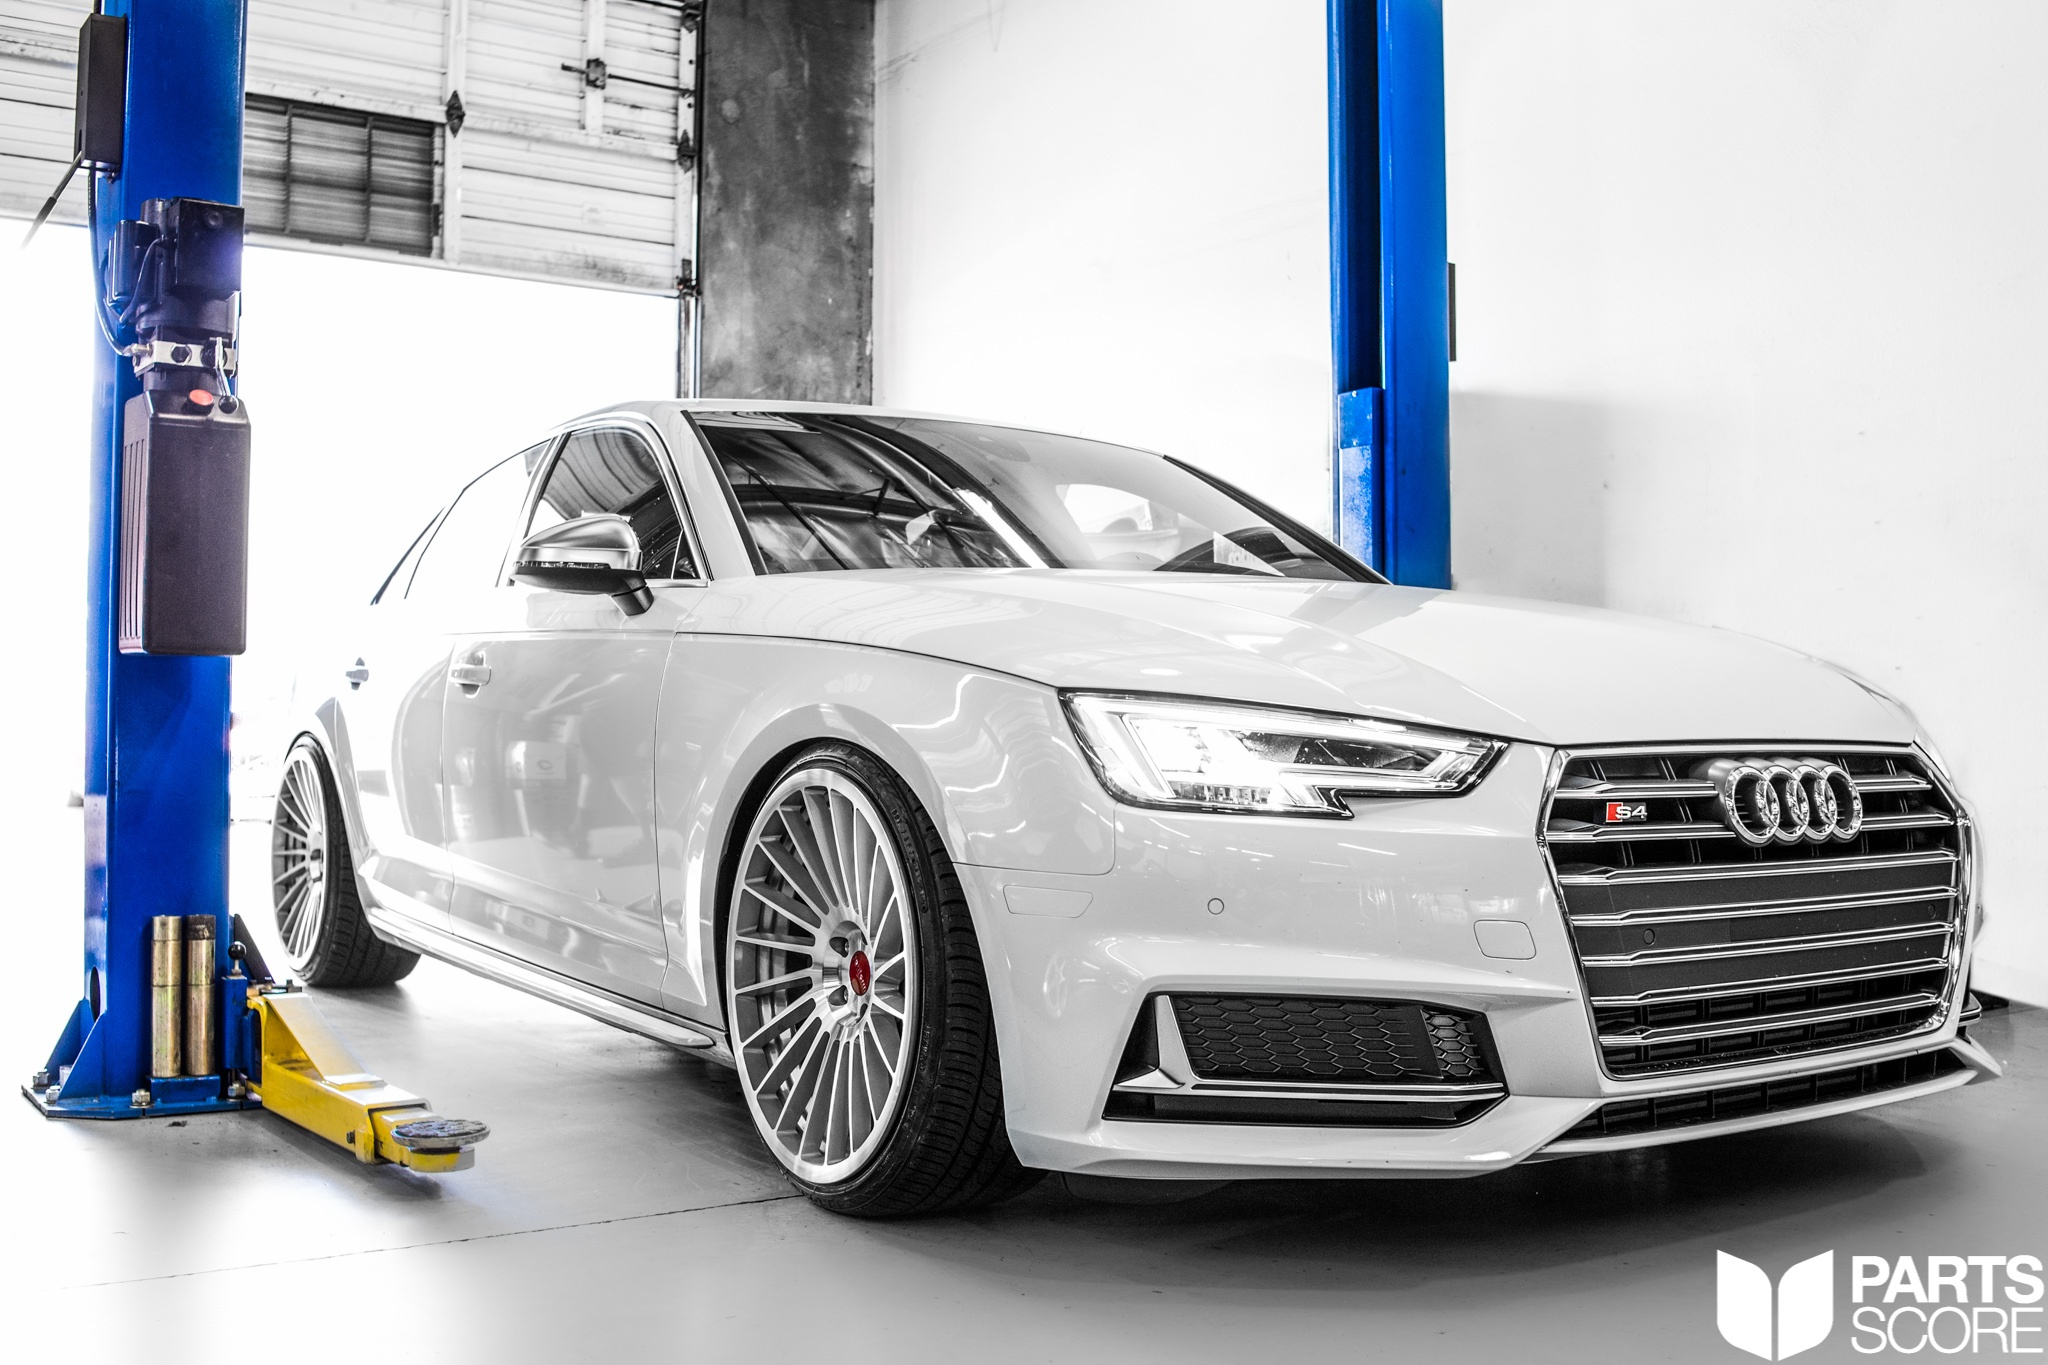 project parts score audi b9 s4 rotiform indt wheels toyo tires